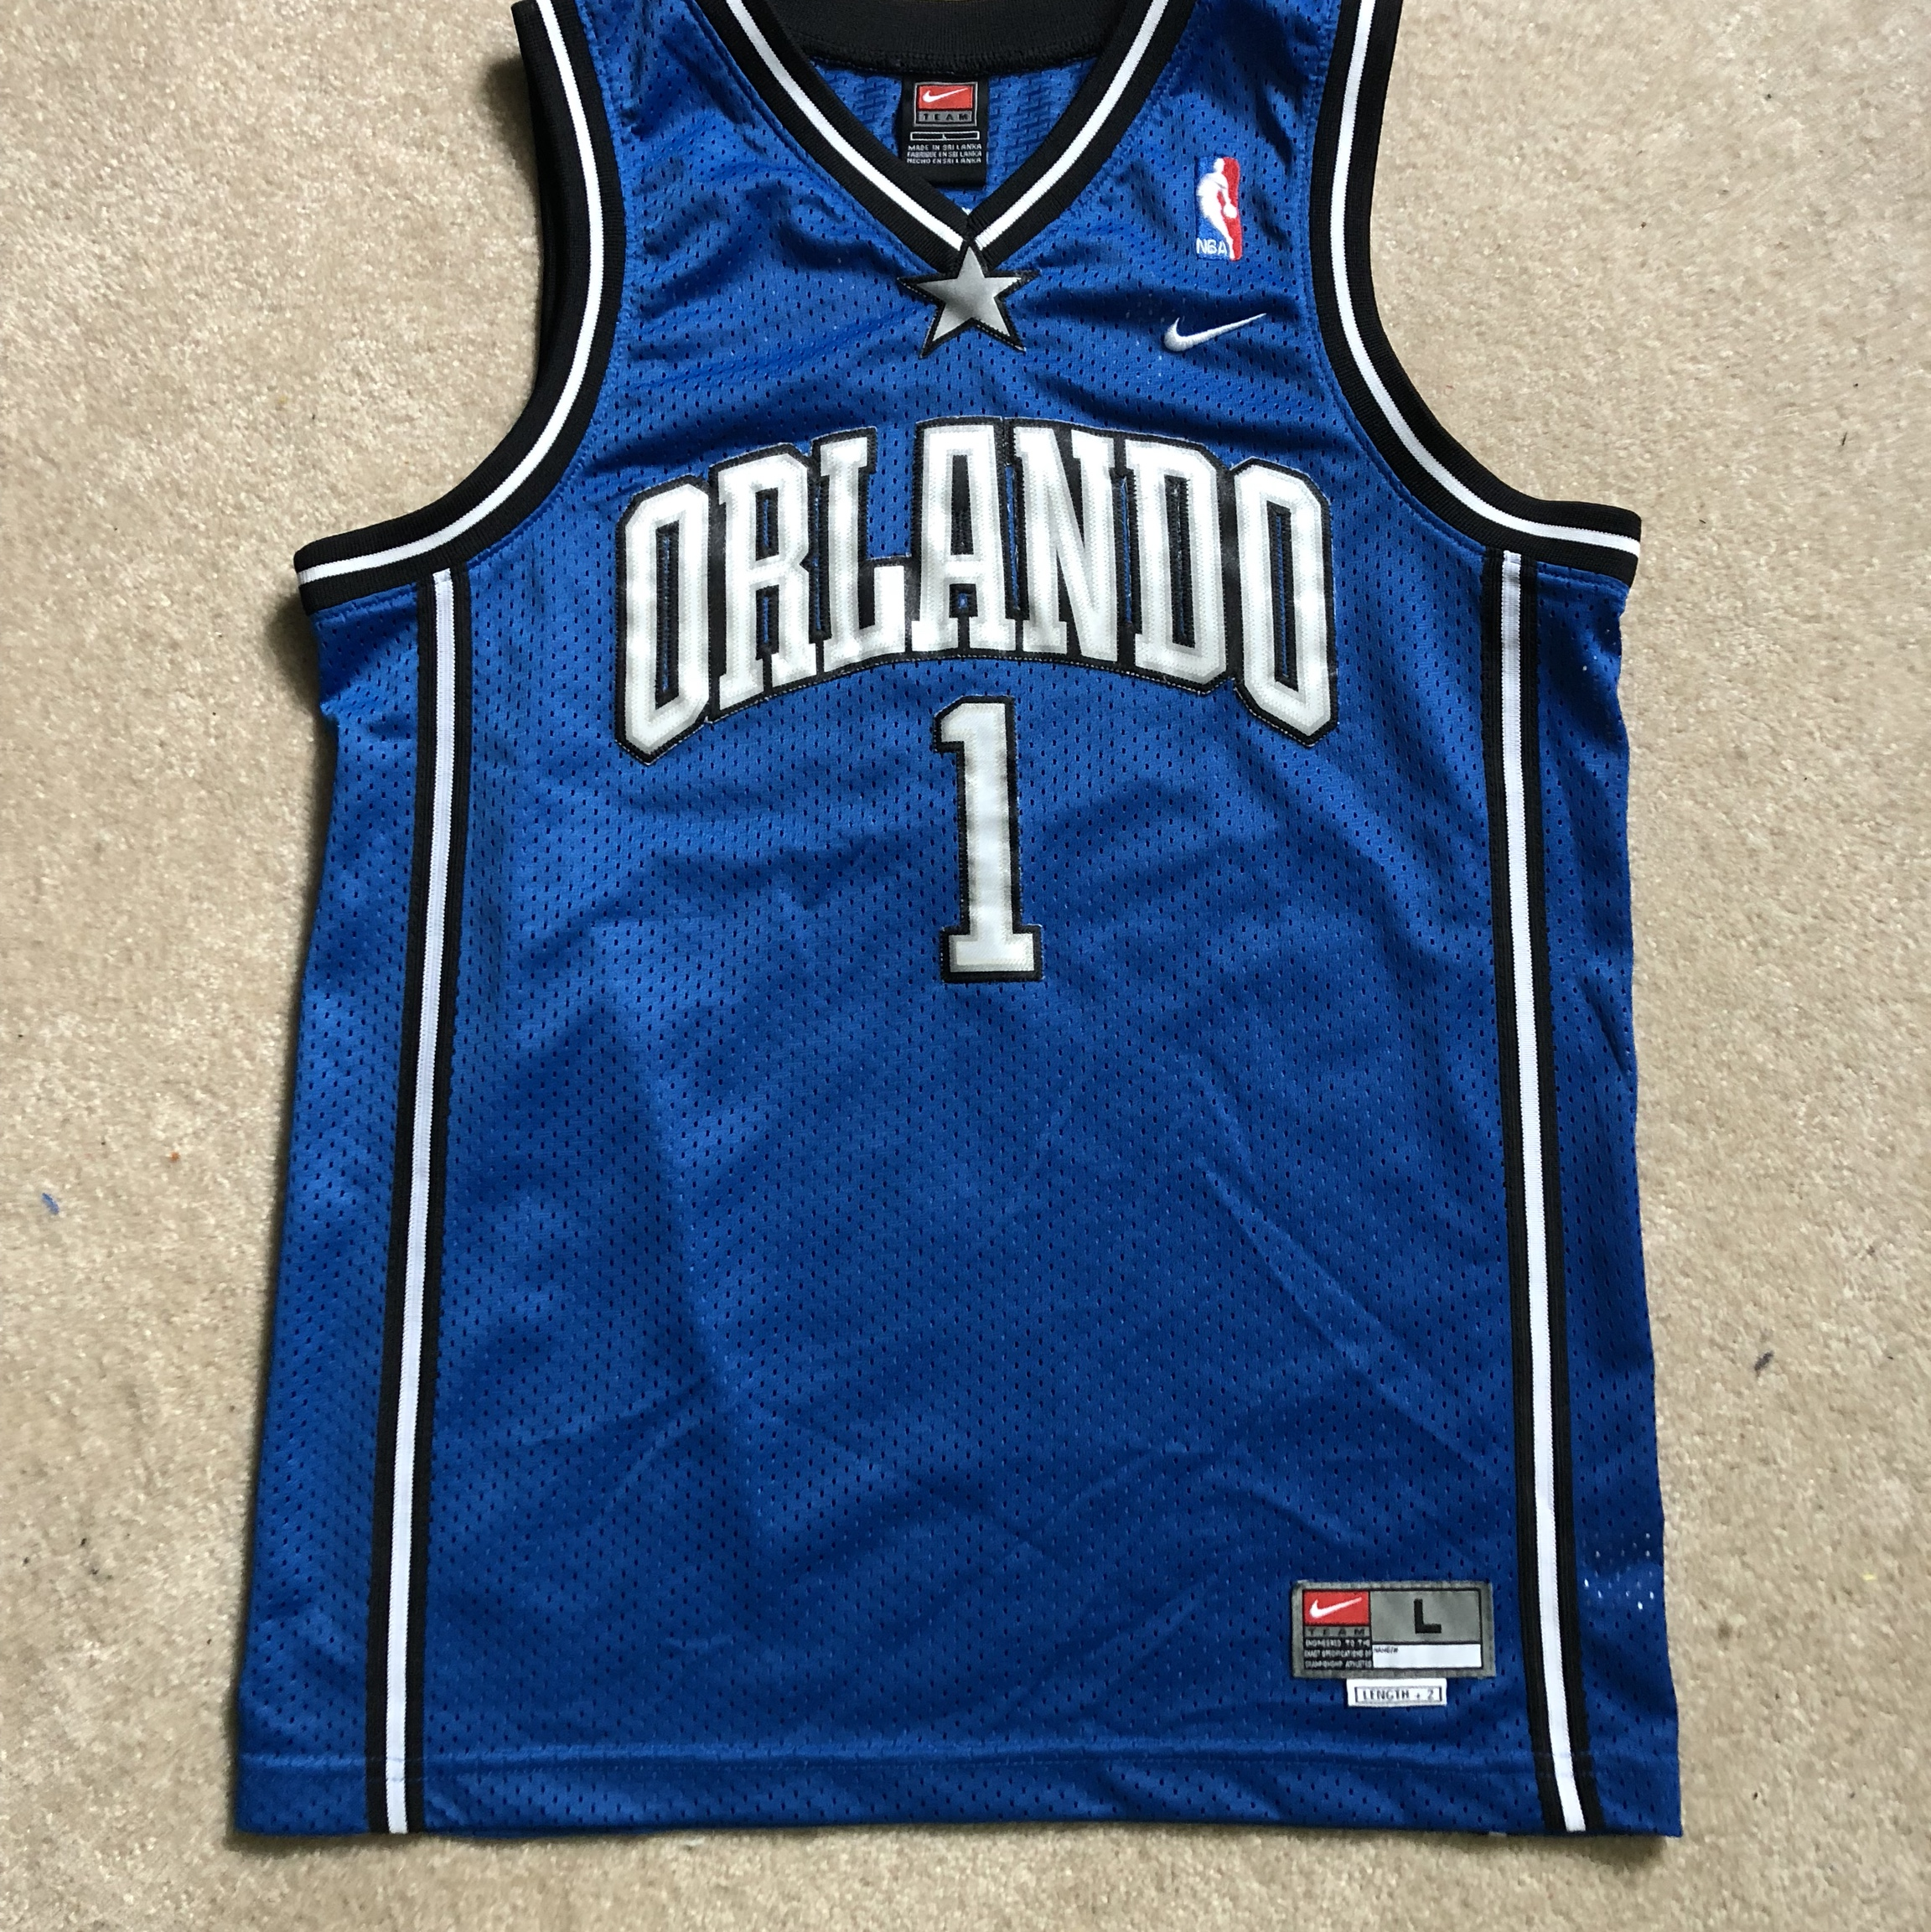 info for e2a1f e8f2c Vintage Nike NBA Tracy McGrady Jersey Kids/women's... - Depop